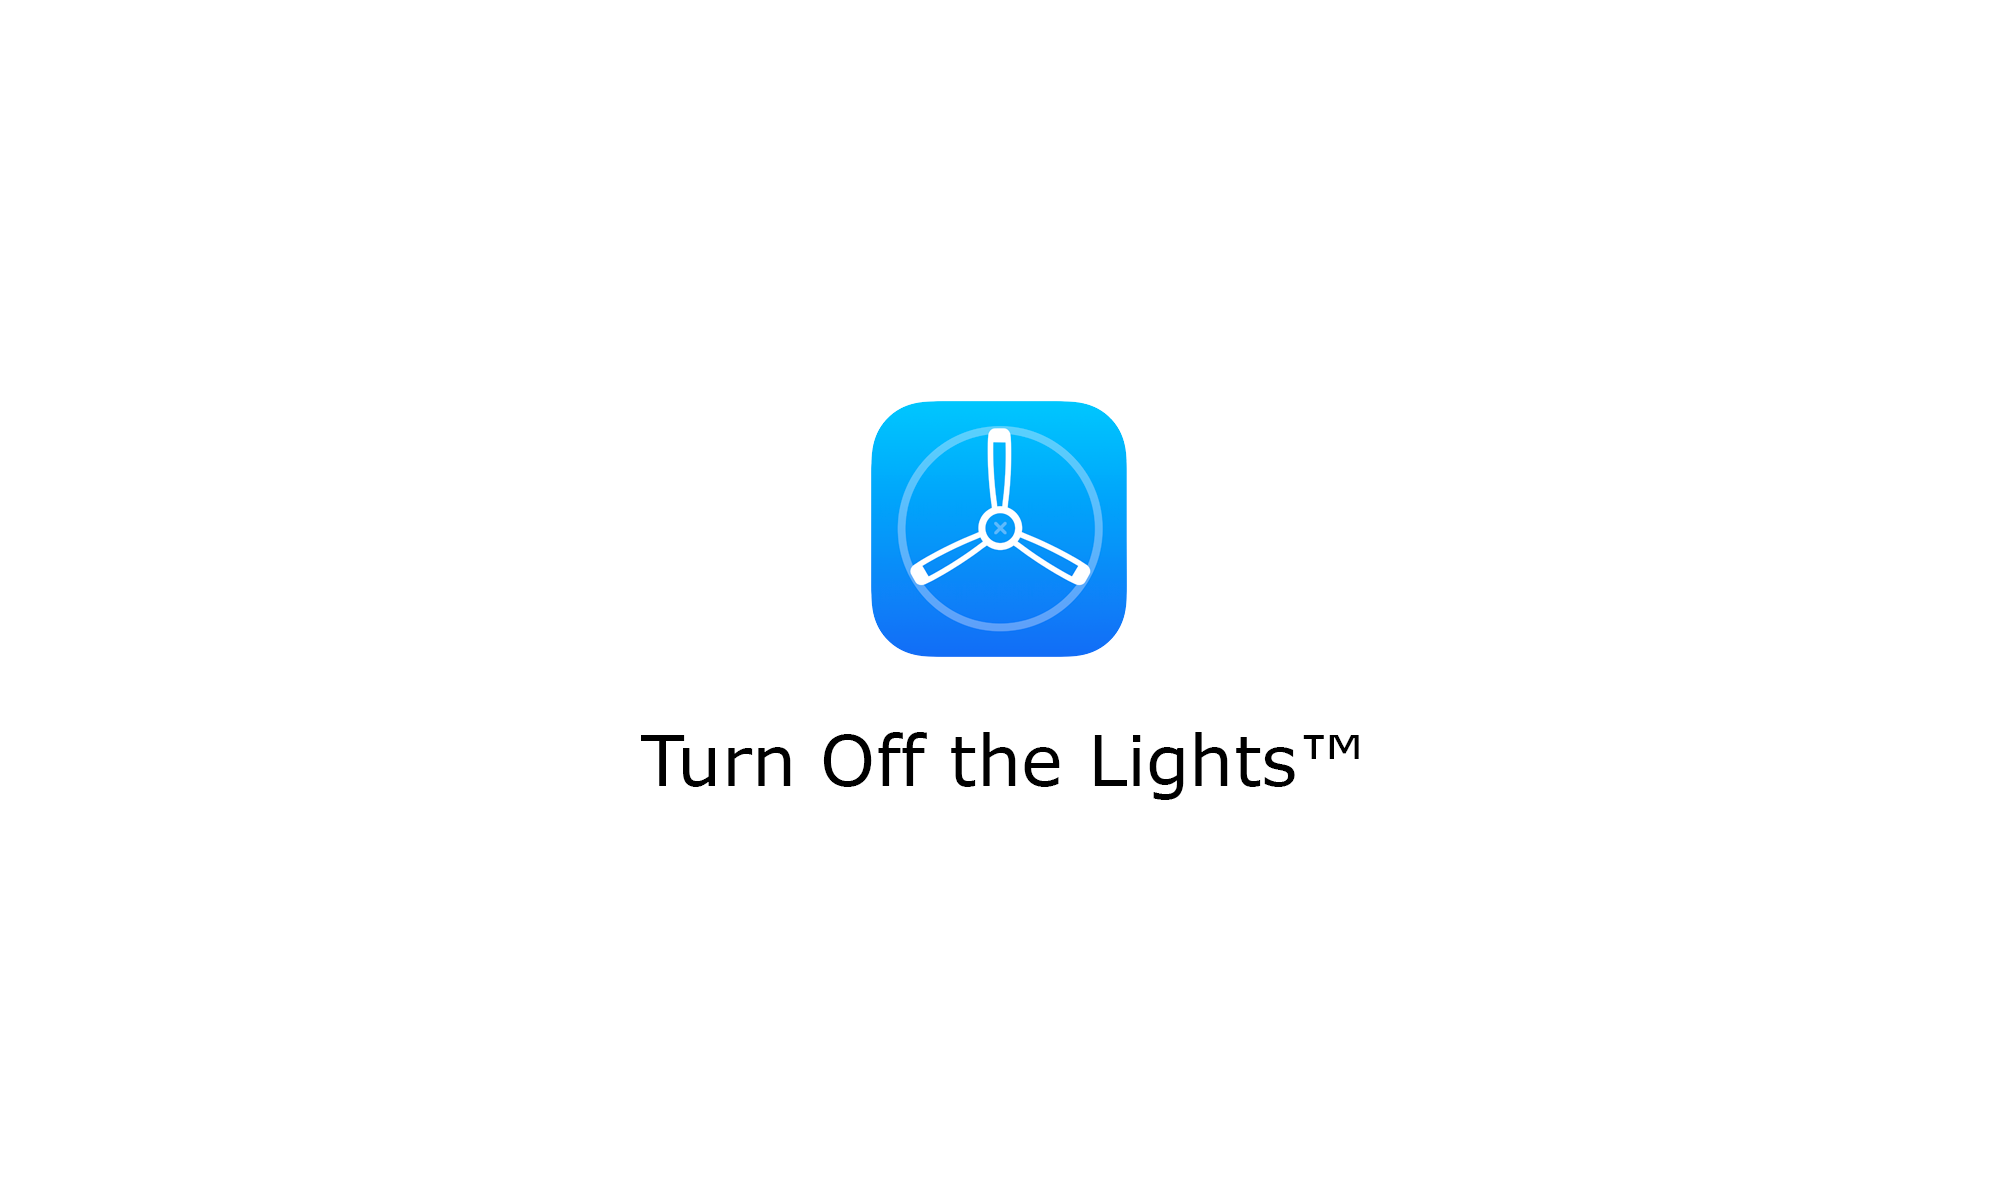 Turn Off the Lights-beta app testflight iPhone app